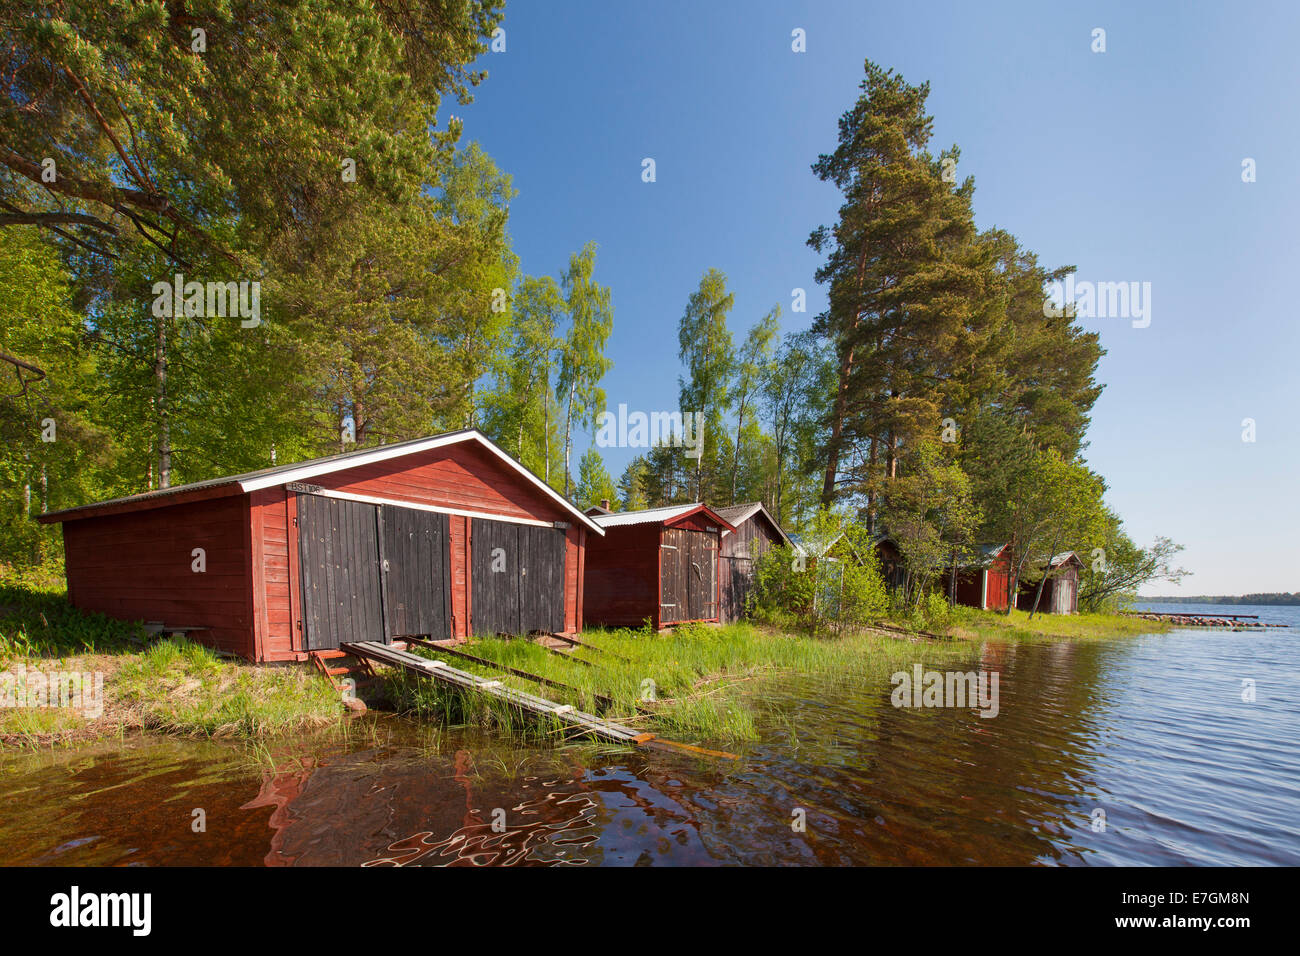 Red wooden boathouses along lake Siljan in summer, Dalarna, Sweden - Stock Image